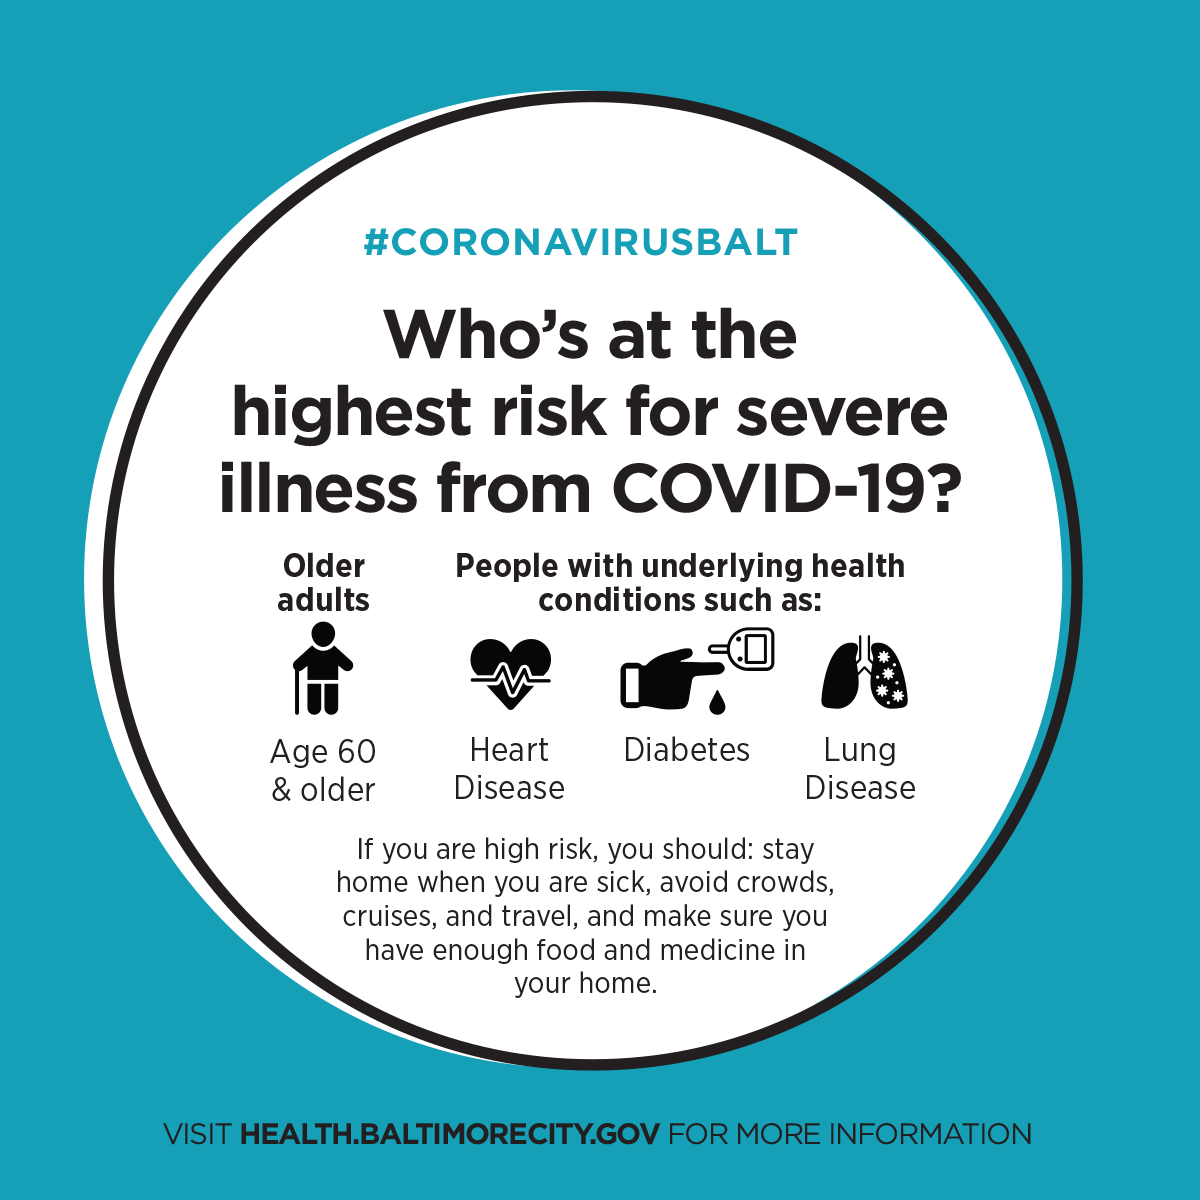 Who's at highest risk? Older adults & those with underlying health conditions are at risk